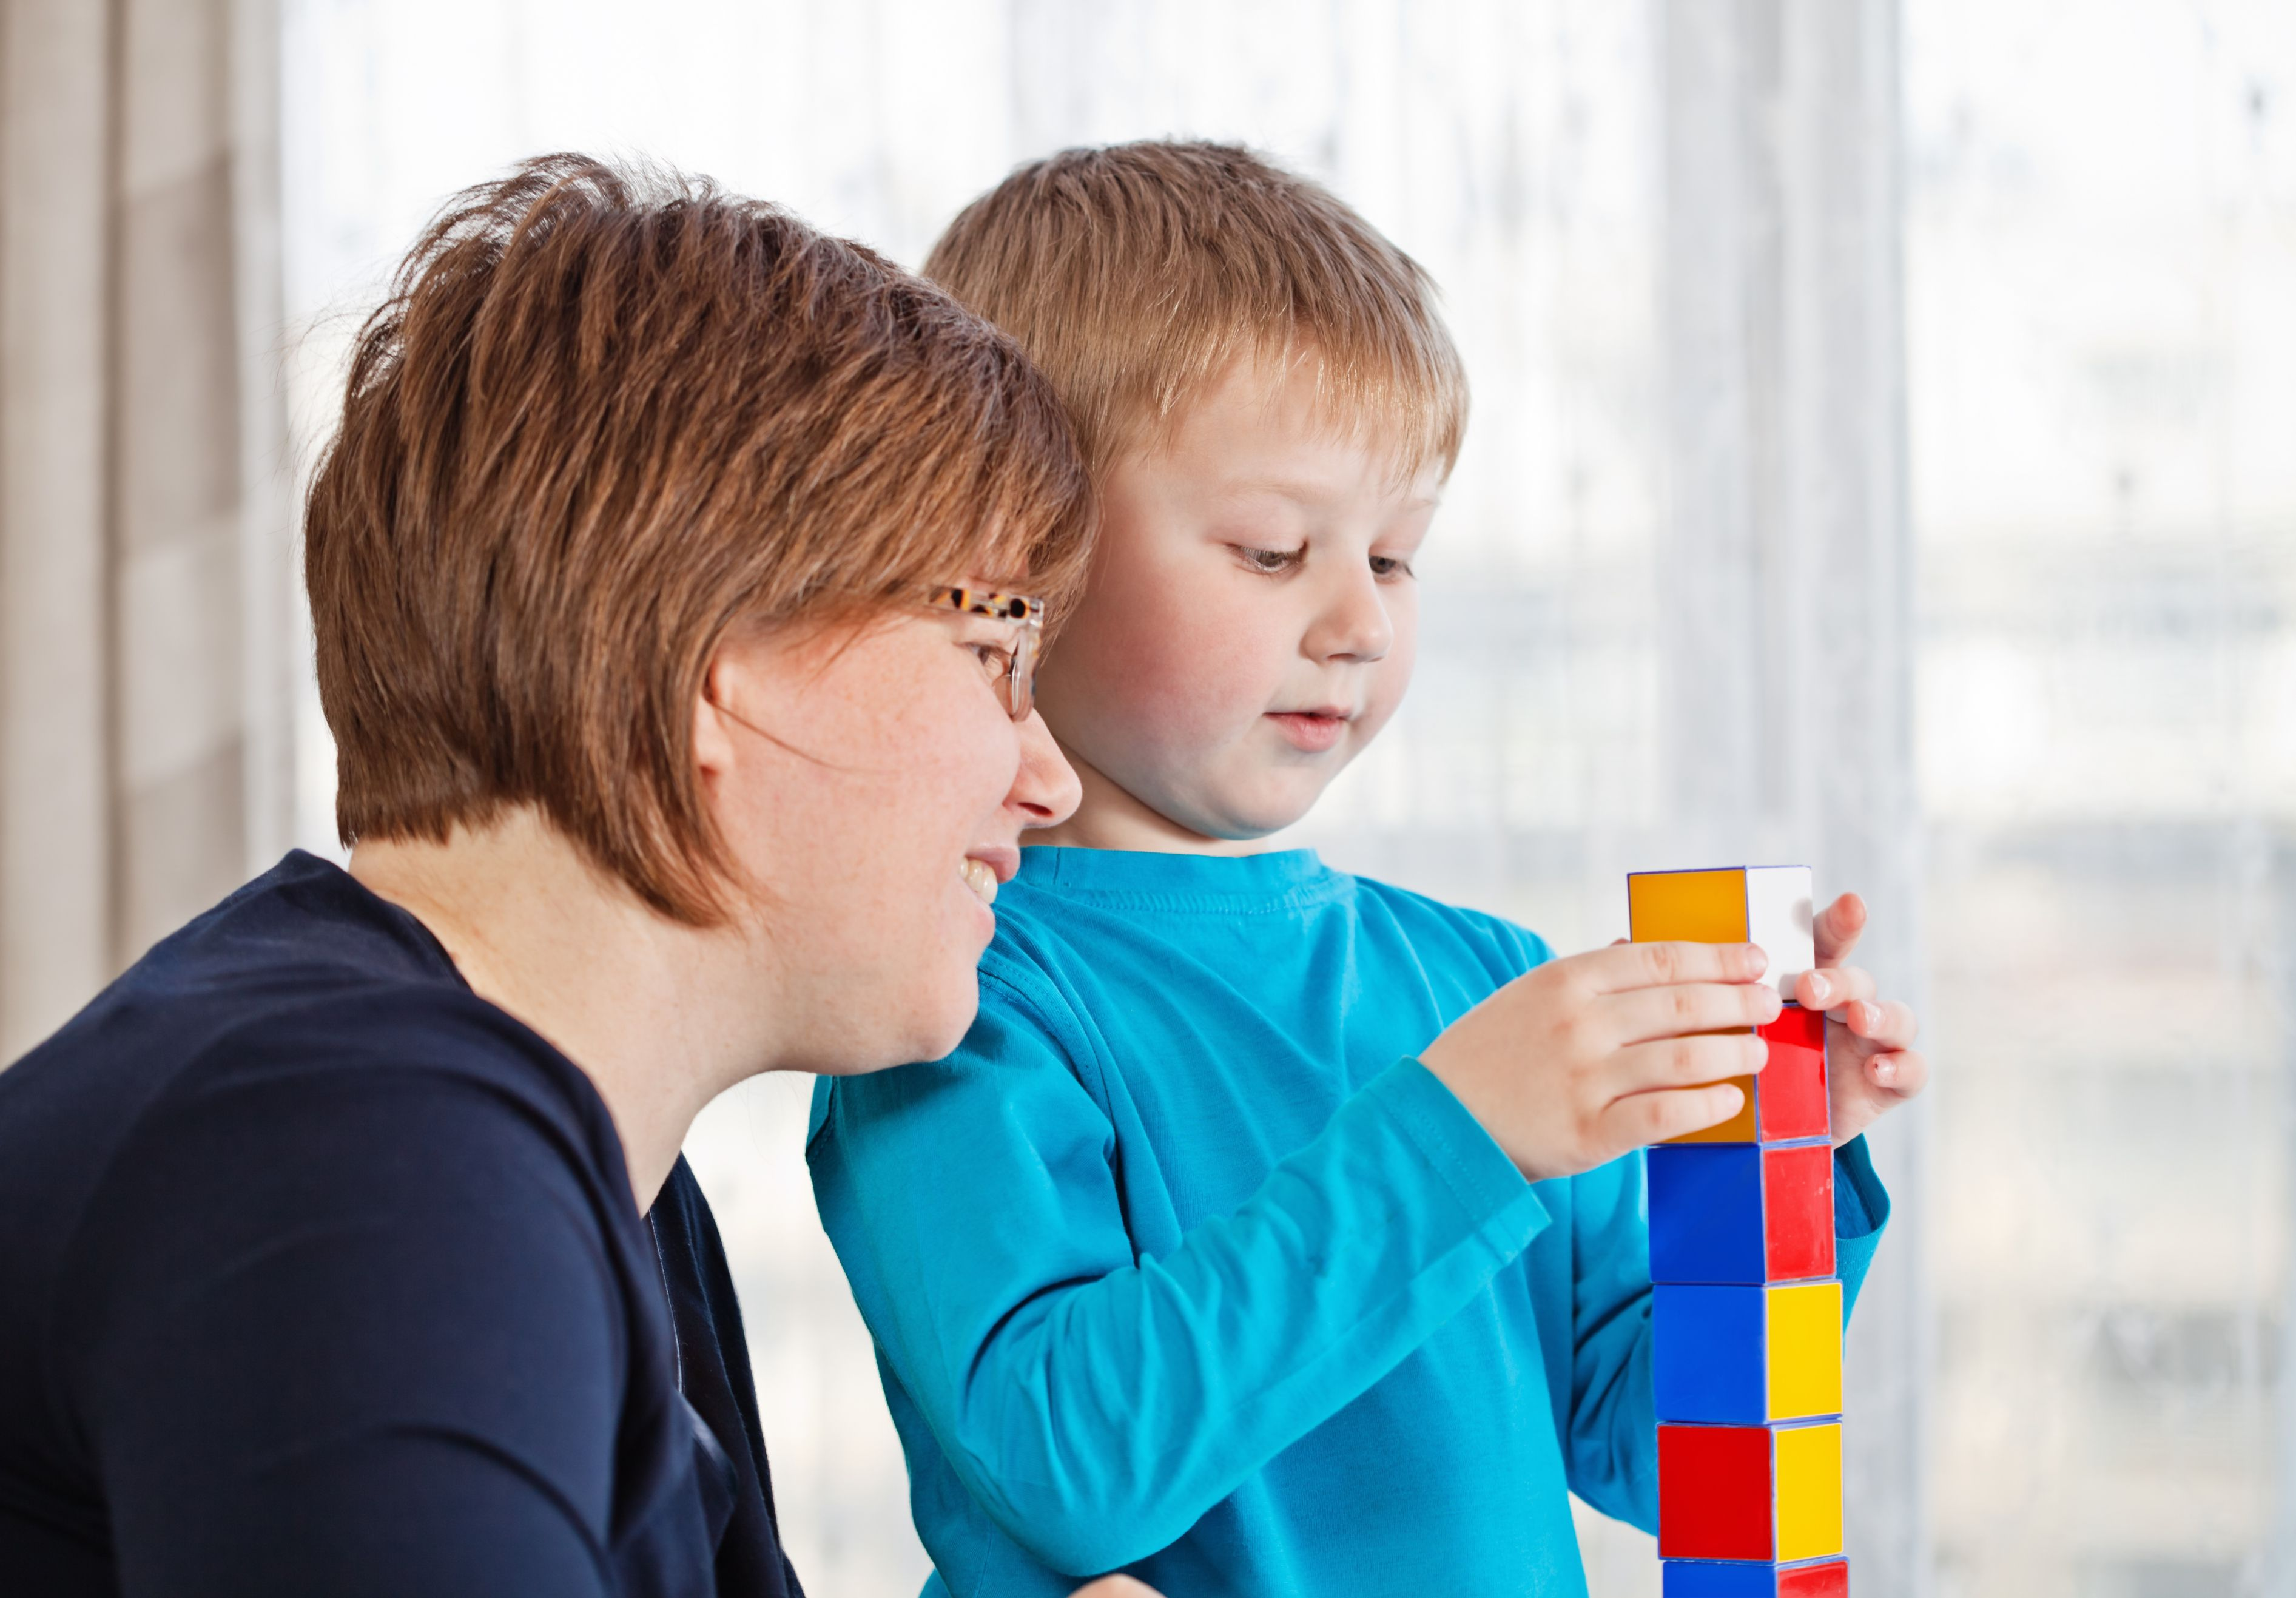 Preschool Readiness 9 Playful Ways To Build Early Math